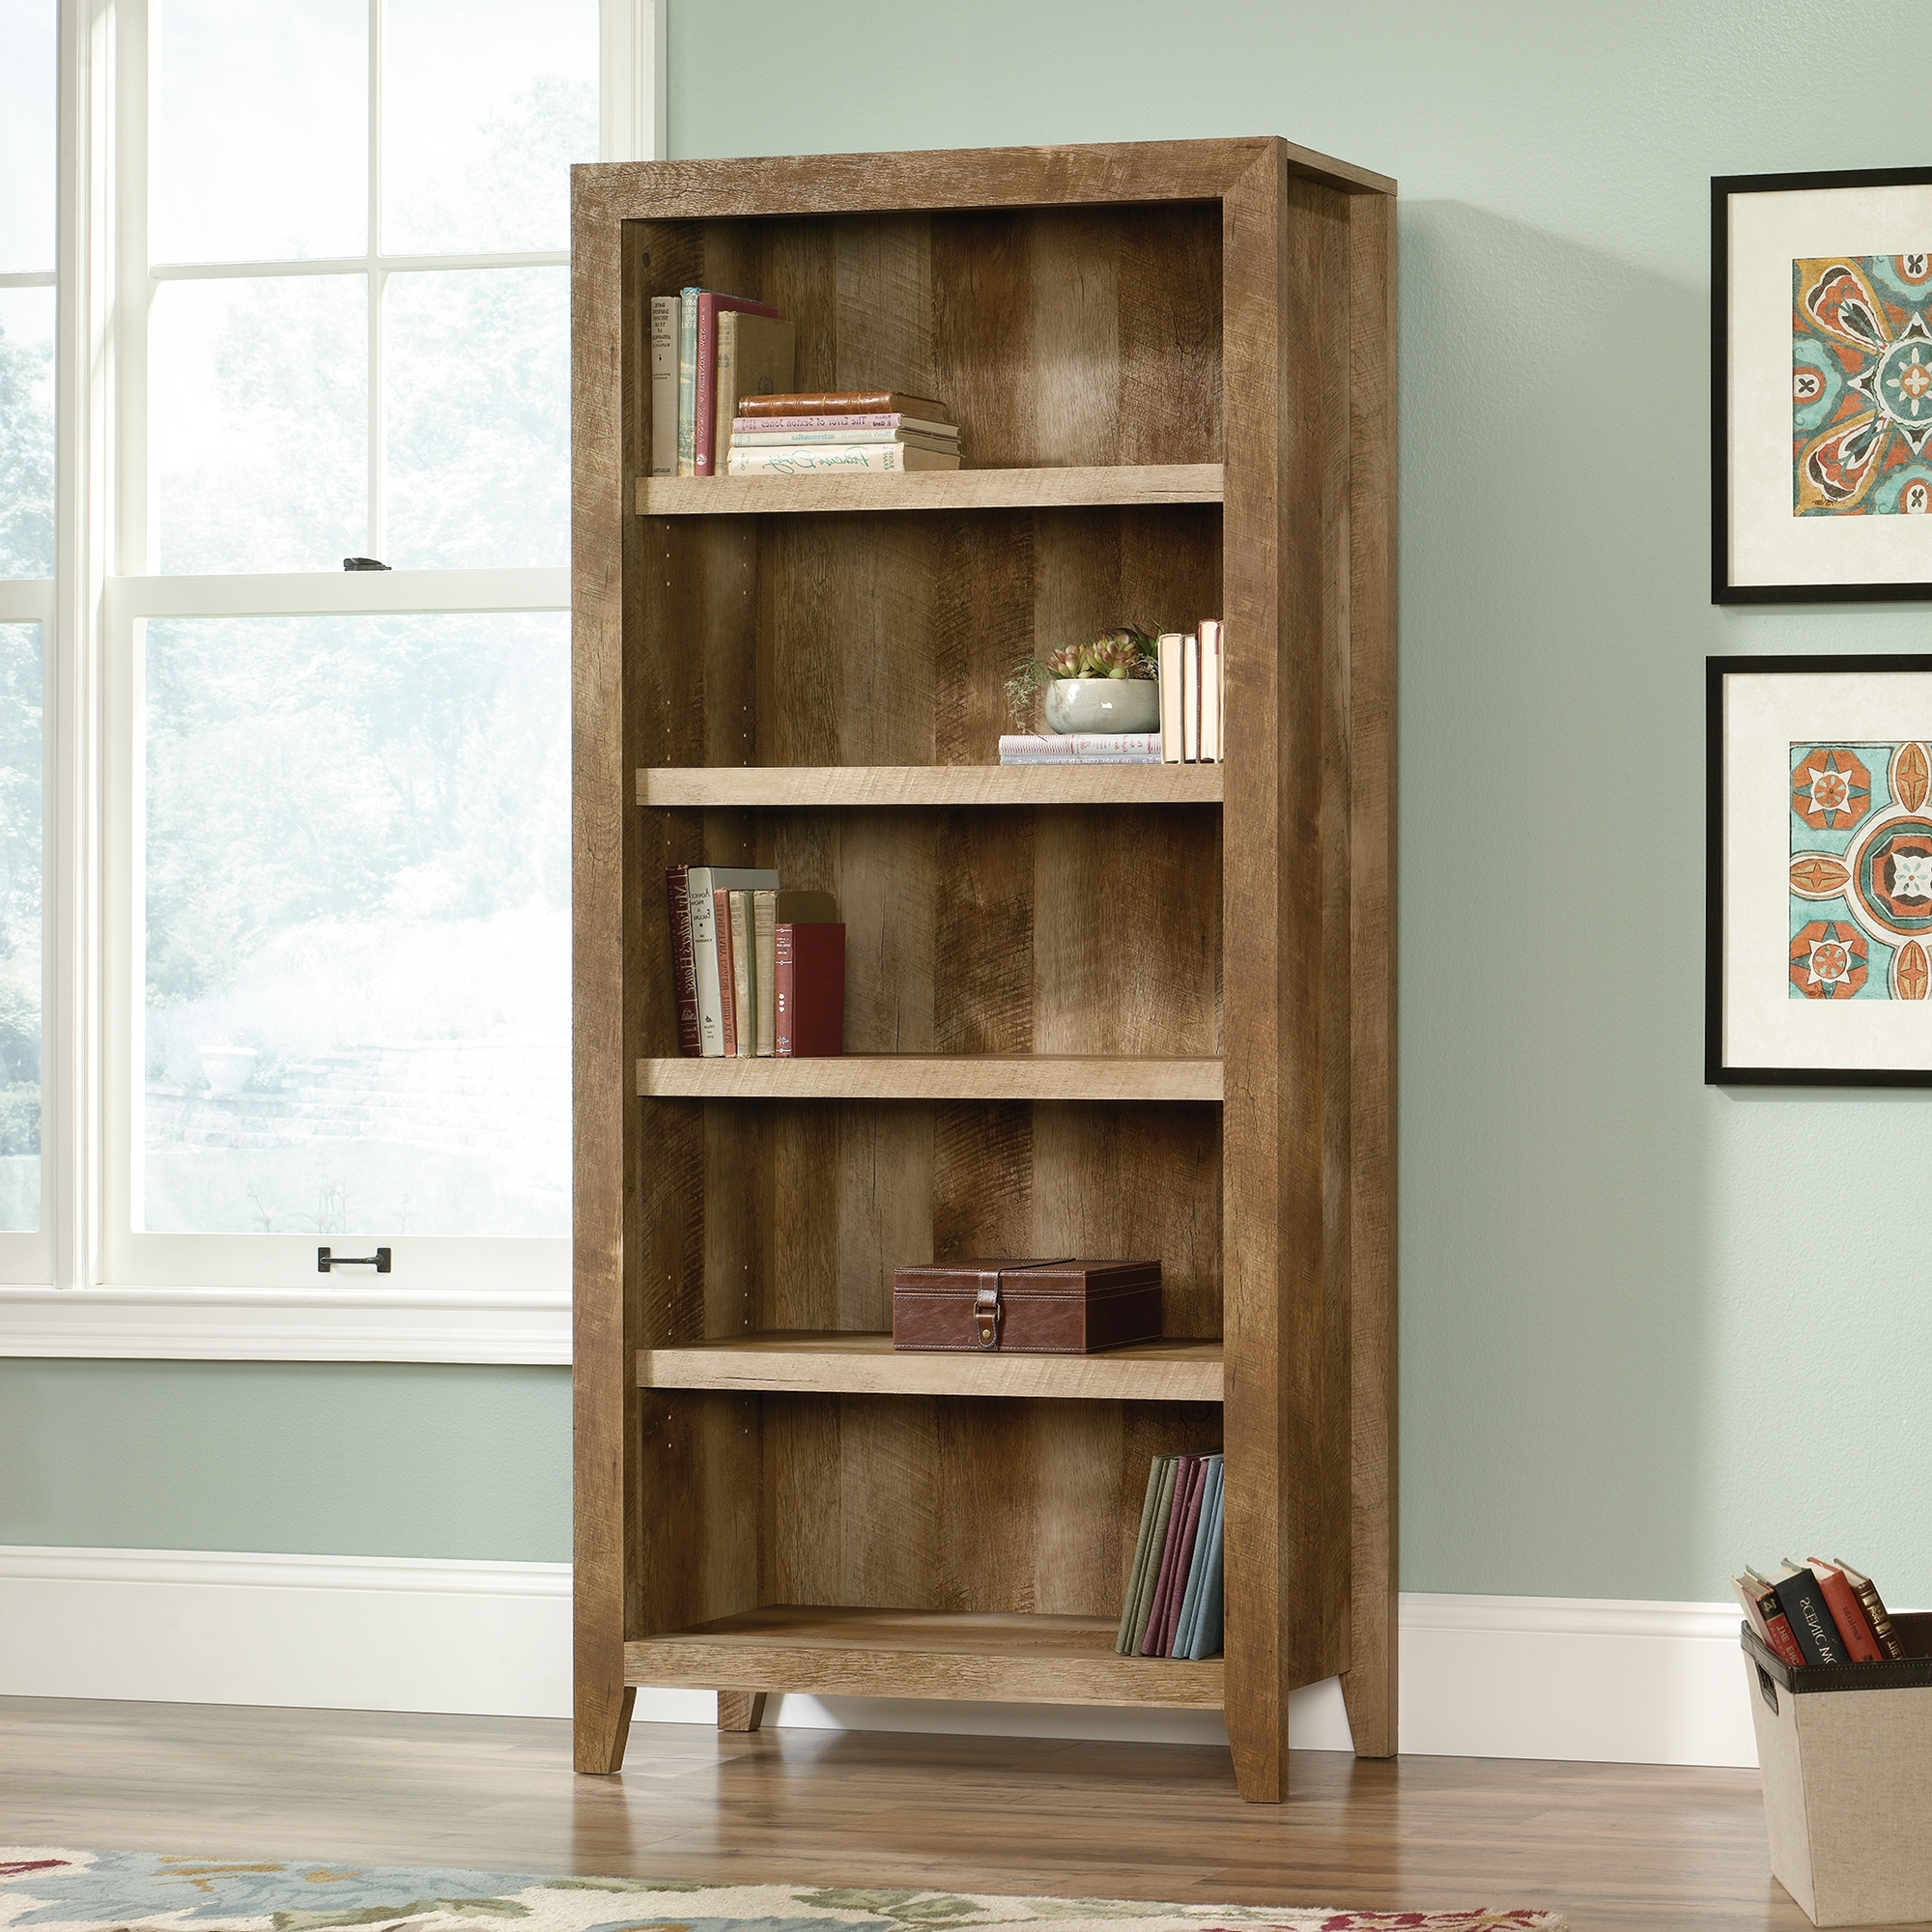 Furniture Home: Elegant Walmart Shelf Bookcase For Menards With With Regard To Favorite Menards Bookcases (View 6 of 15)